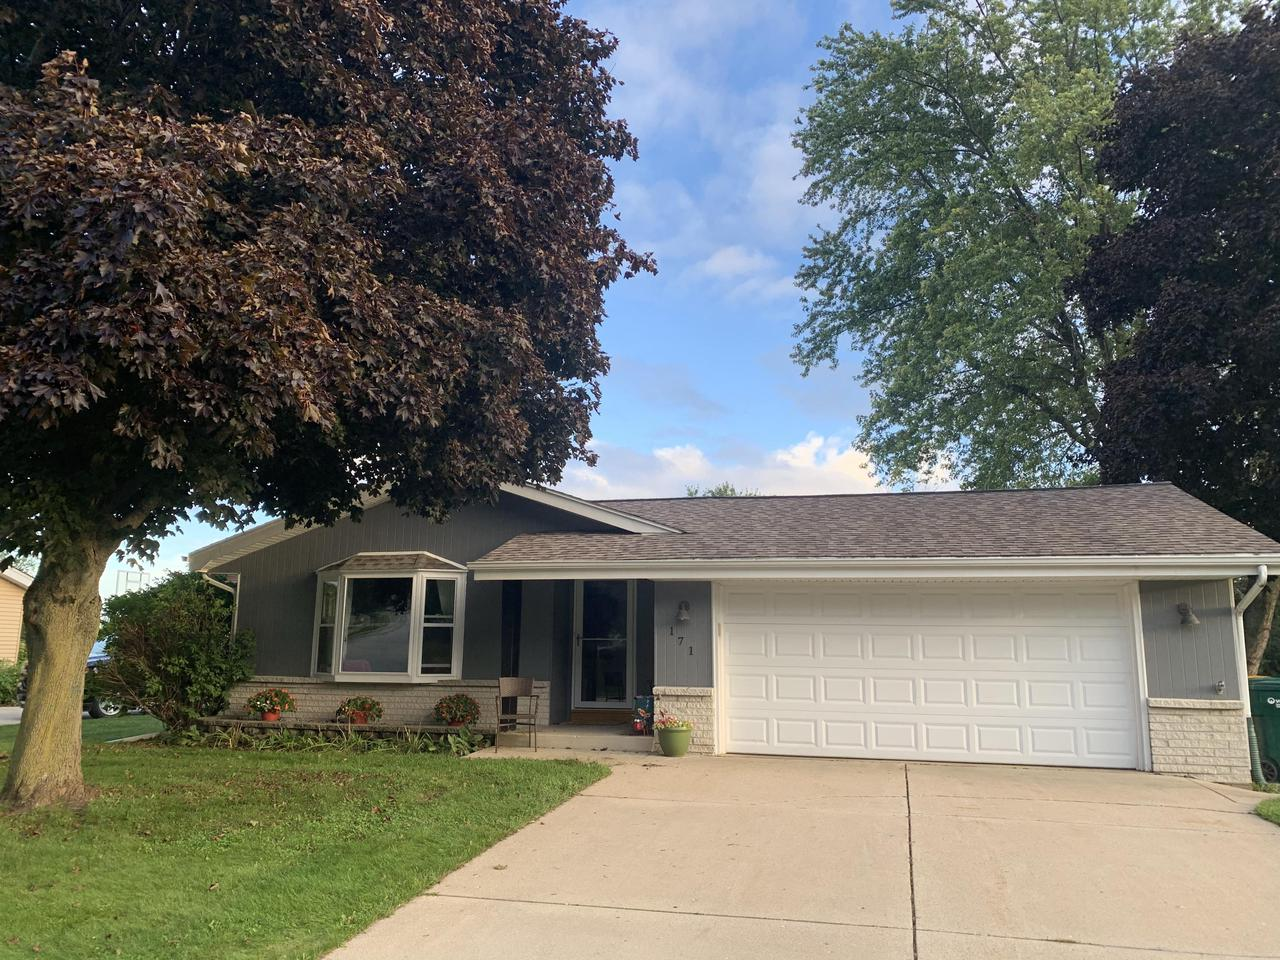 Don't Miss This Updated 3 bedroom, 1 full and 2 half bath ranch with natural fireplace near shopping and schools. Large eat-in kitchen plus dining room open to living room. Roomy village lot with mature trees that abuts the bike path. All updated bathrooms, kitchen with stainless steel appliances and hardware, new siding, new exterior doors, new bay window with window seat, new central air and water heater, great storage. Hardwood floors throughout living room, dining room & bedrooms.  It also features a custom basement with faux-fireplace for additional living space.